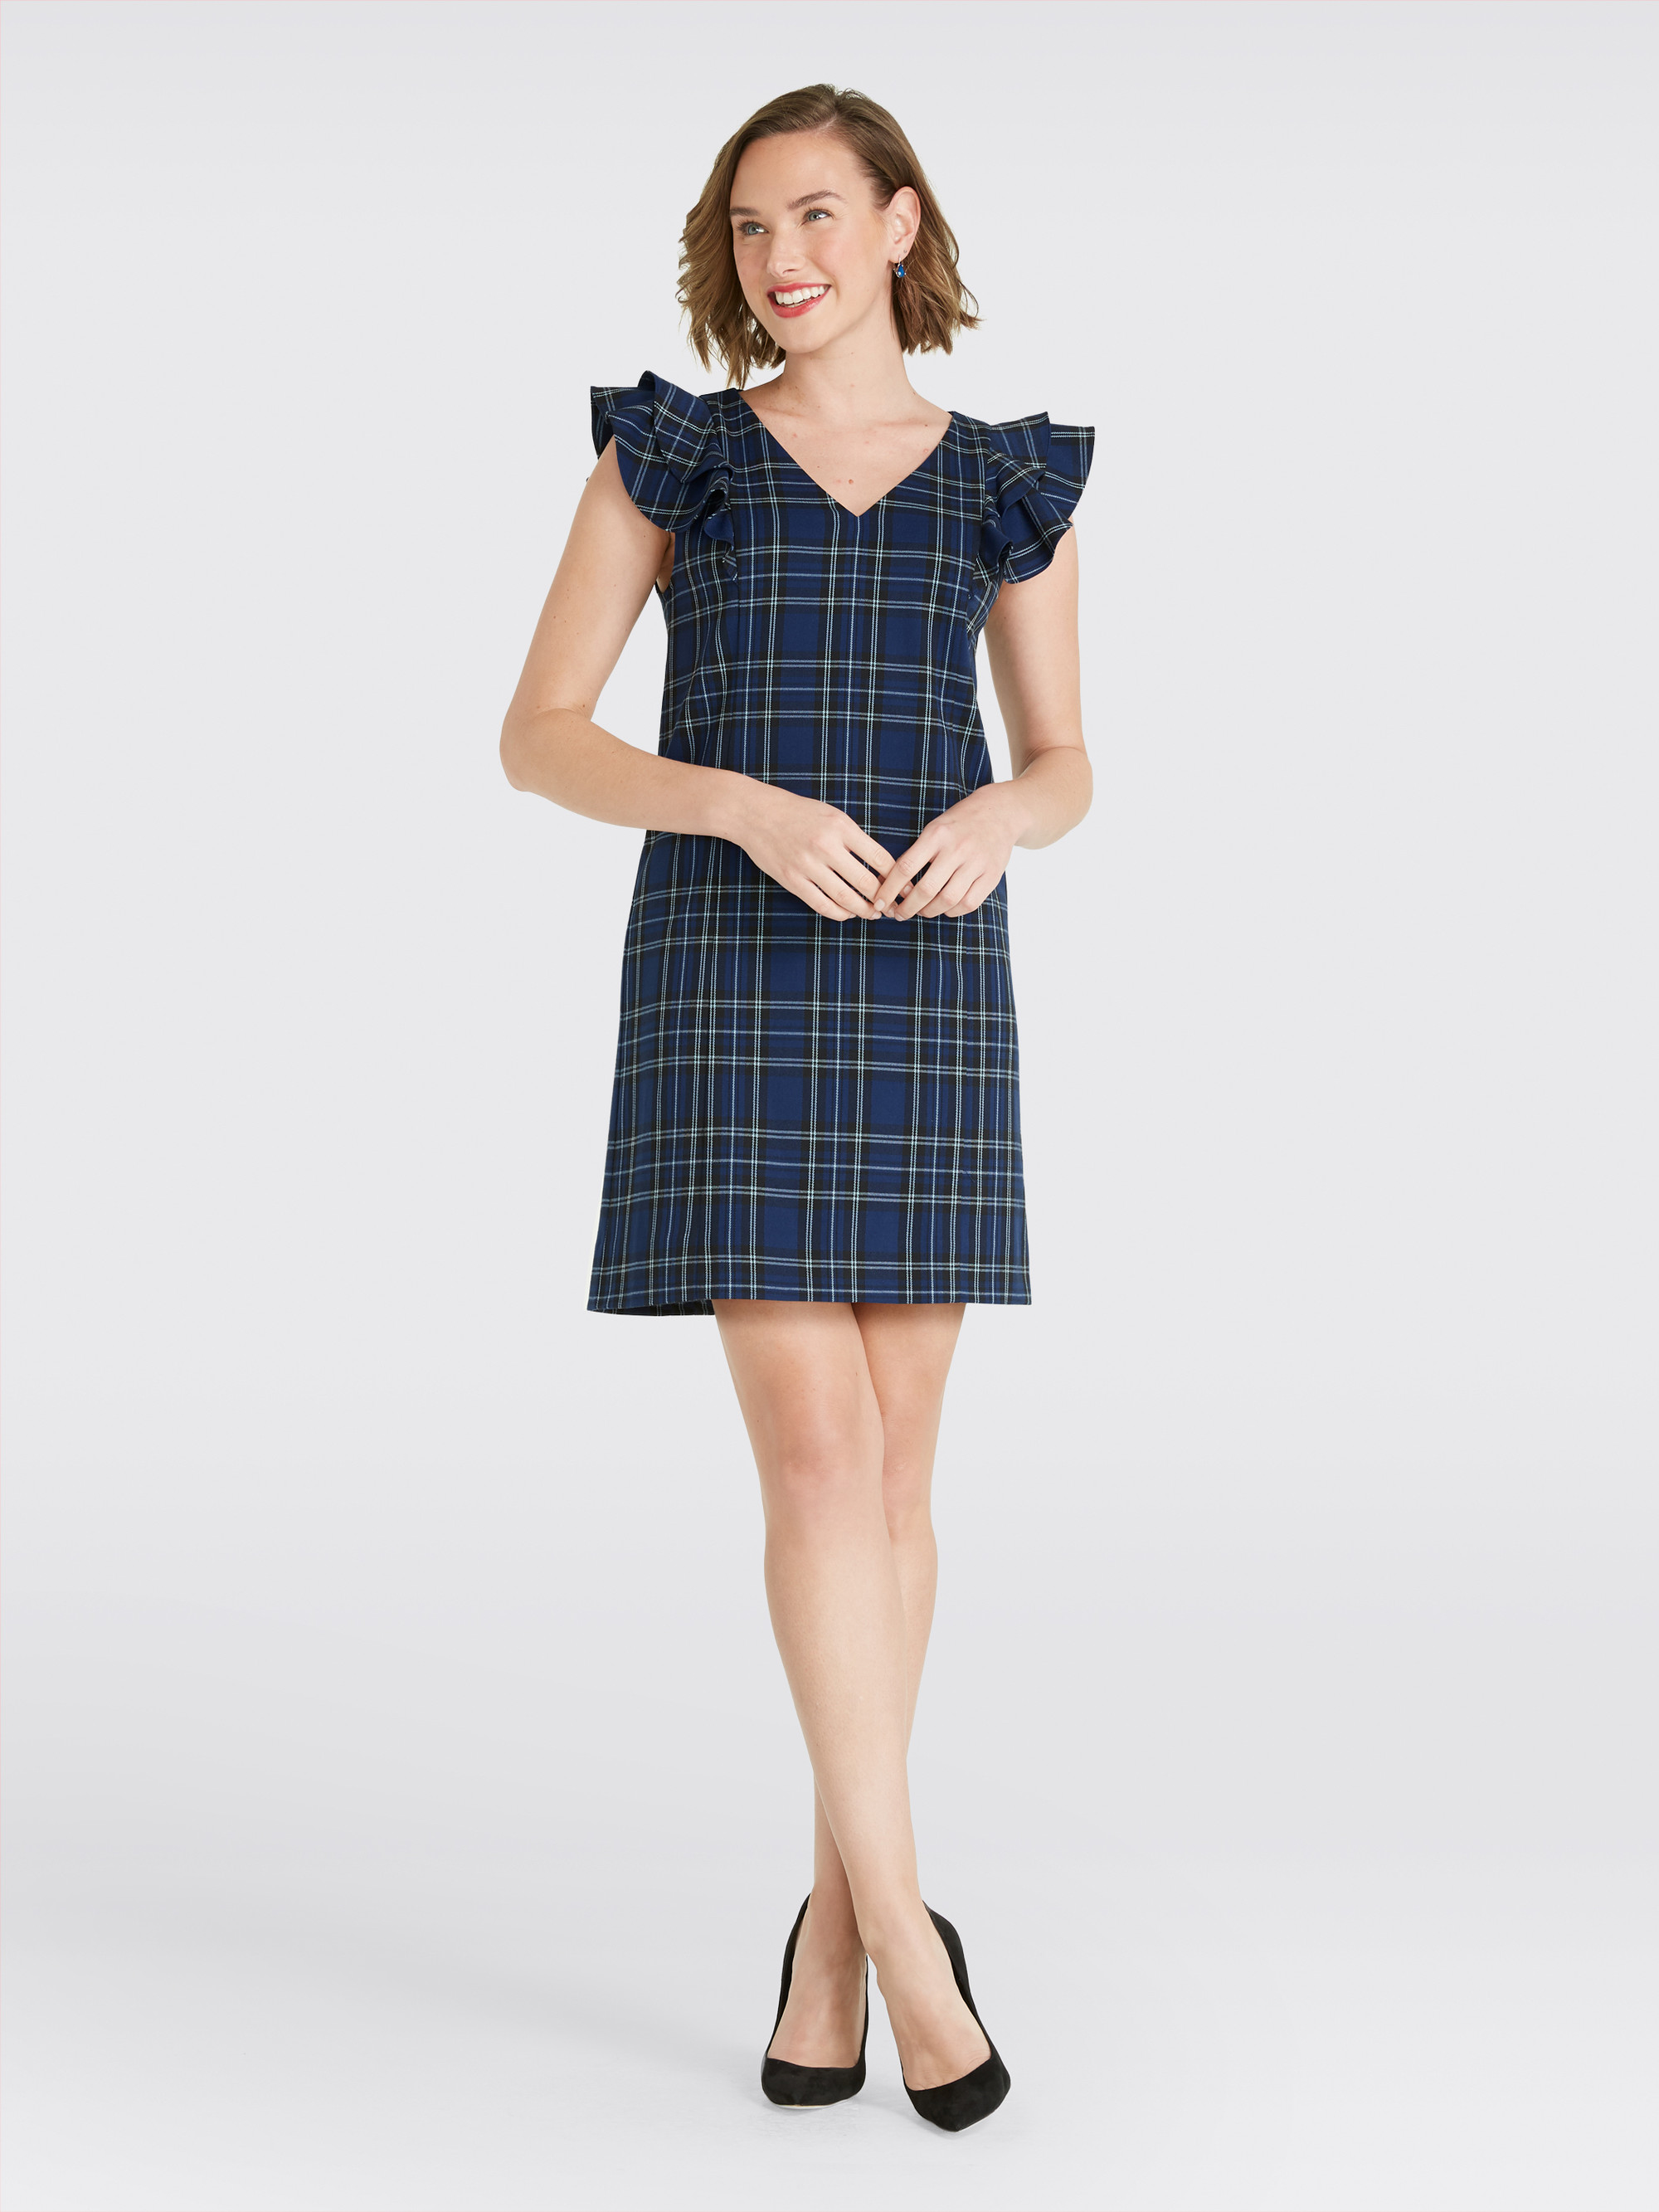 (New with Tags) Draper James Plaid Ruffle Shoulder Dress, Size 4